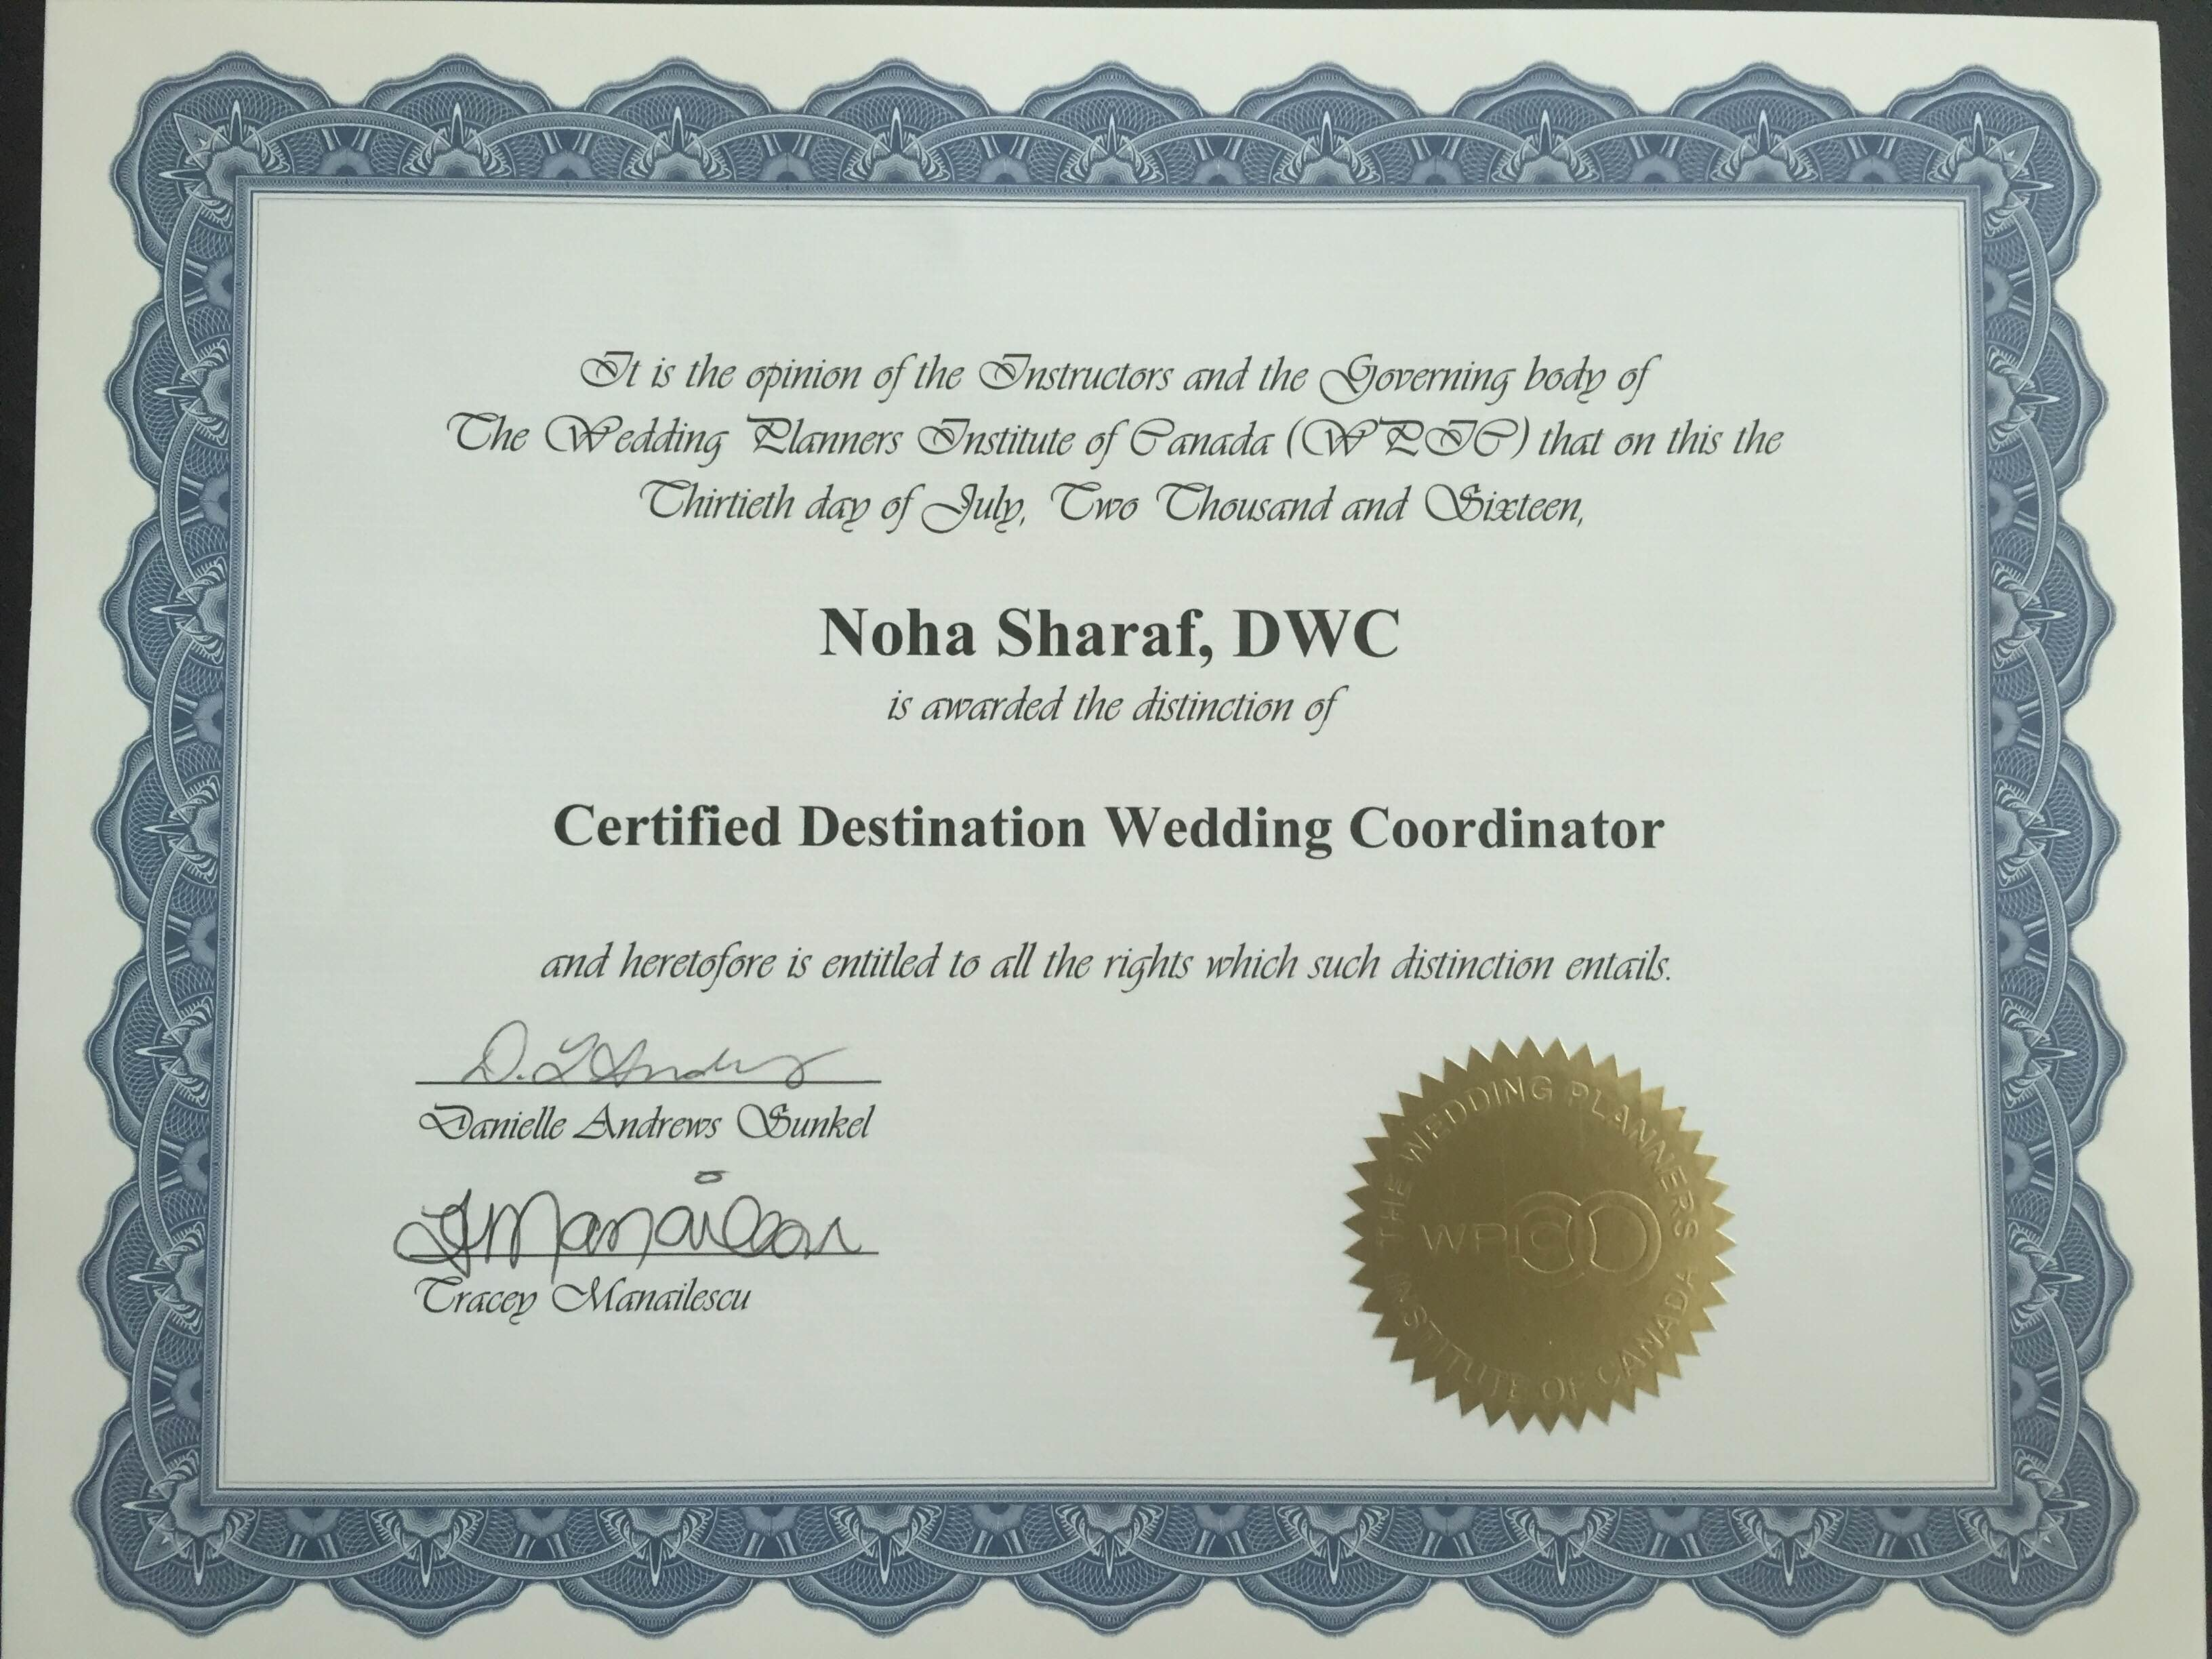 At The Wedding Planners Institute Of Canada